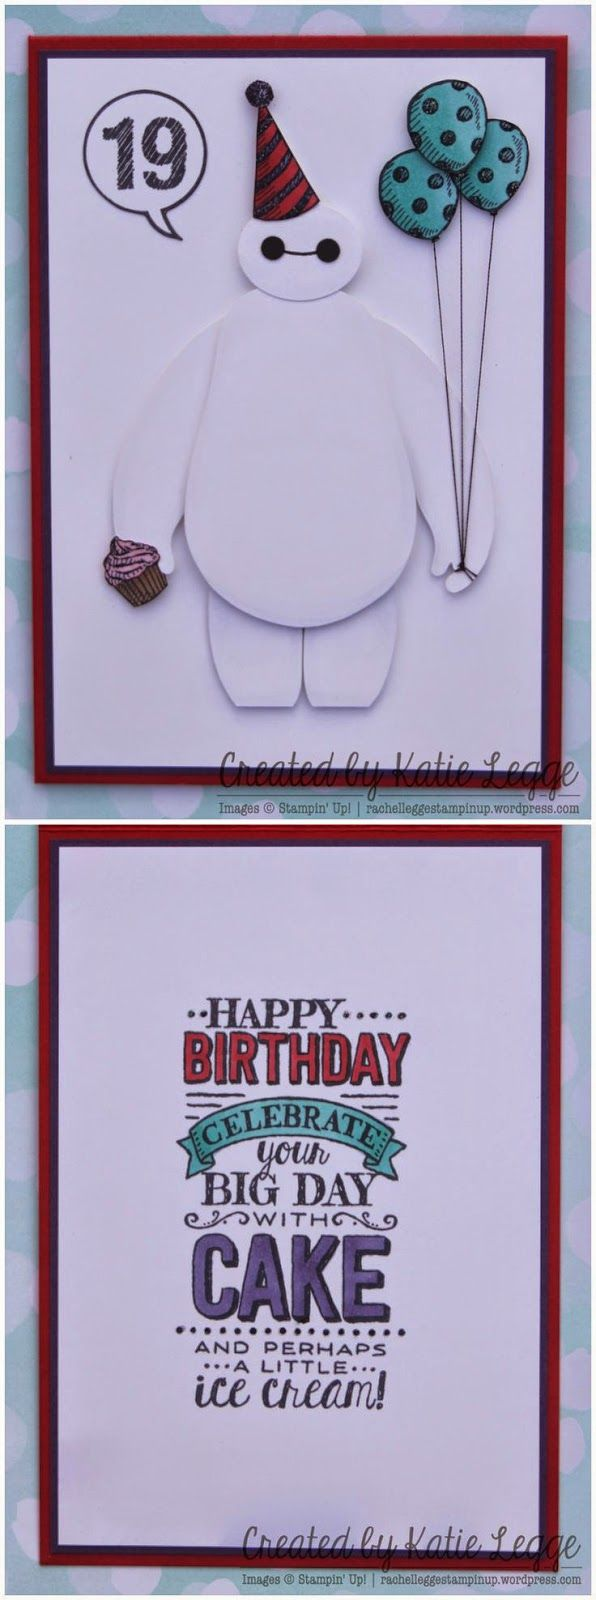 1425 Best Punch Art Images On Pinterest Cards Greeting Cards For